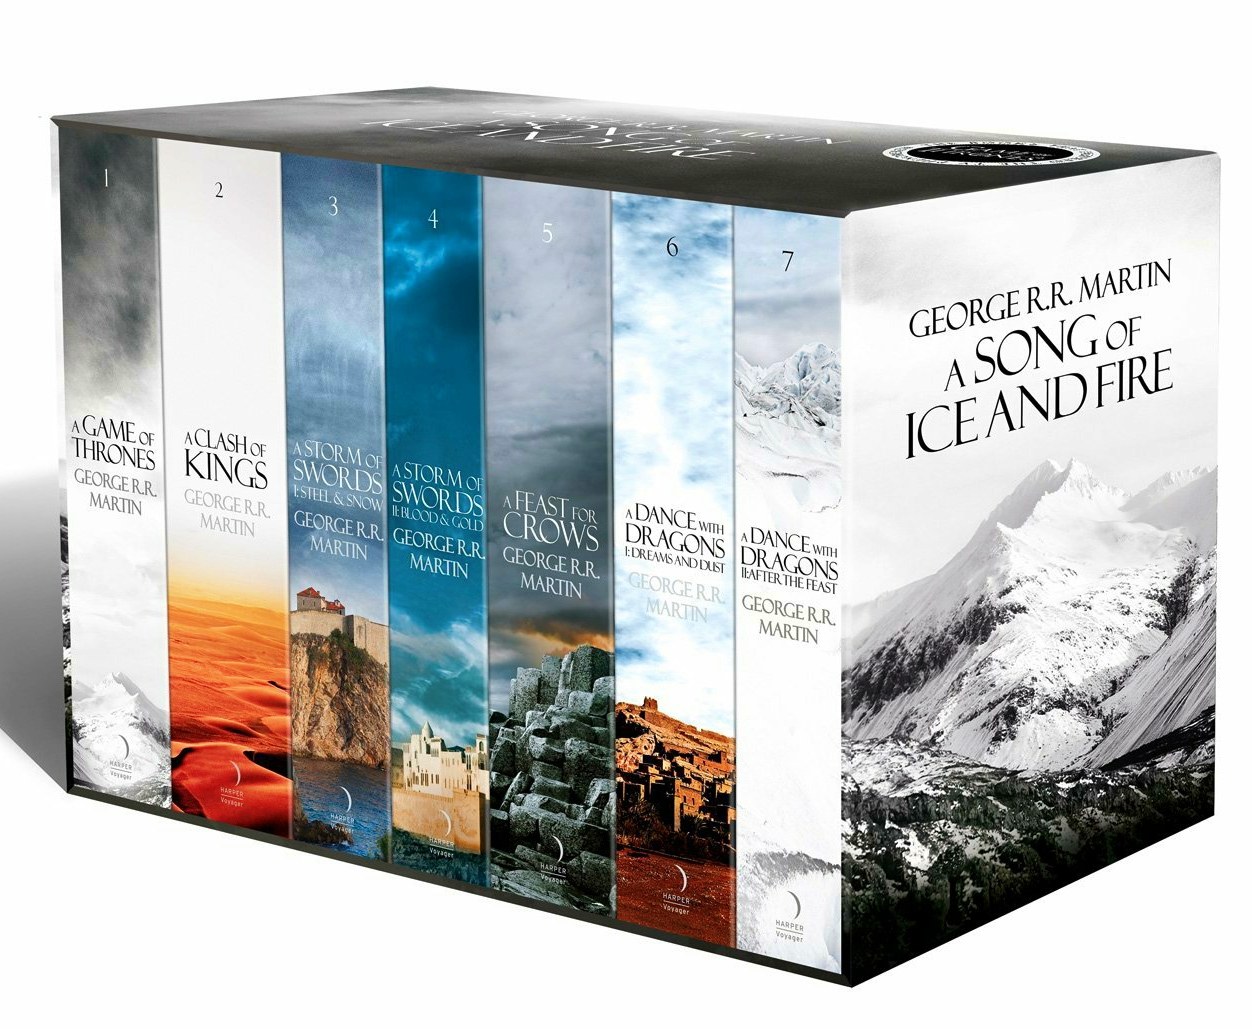 fantasy and adventure books - A Song of Ice and Fire